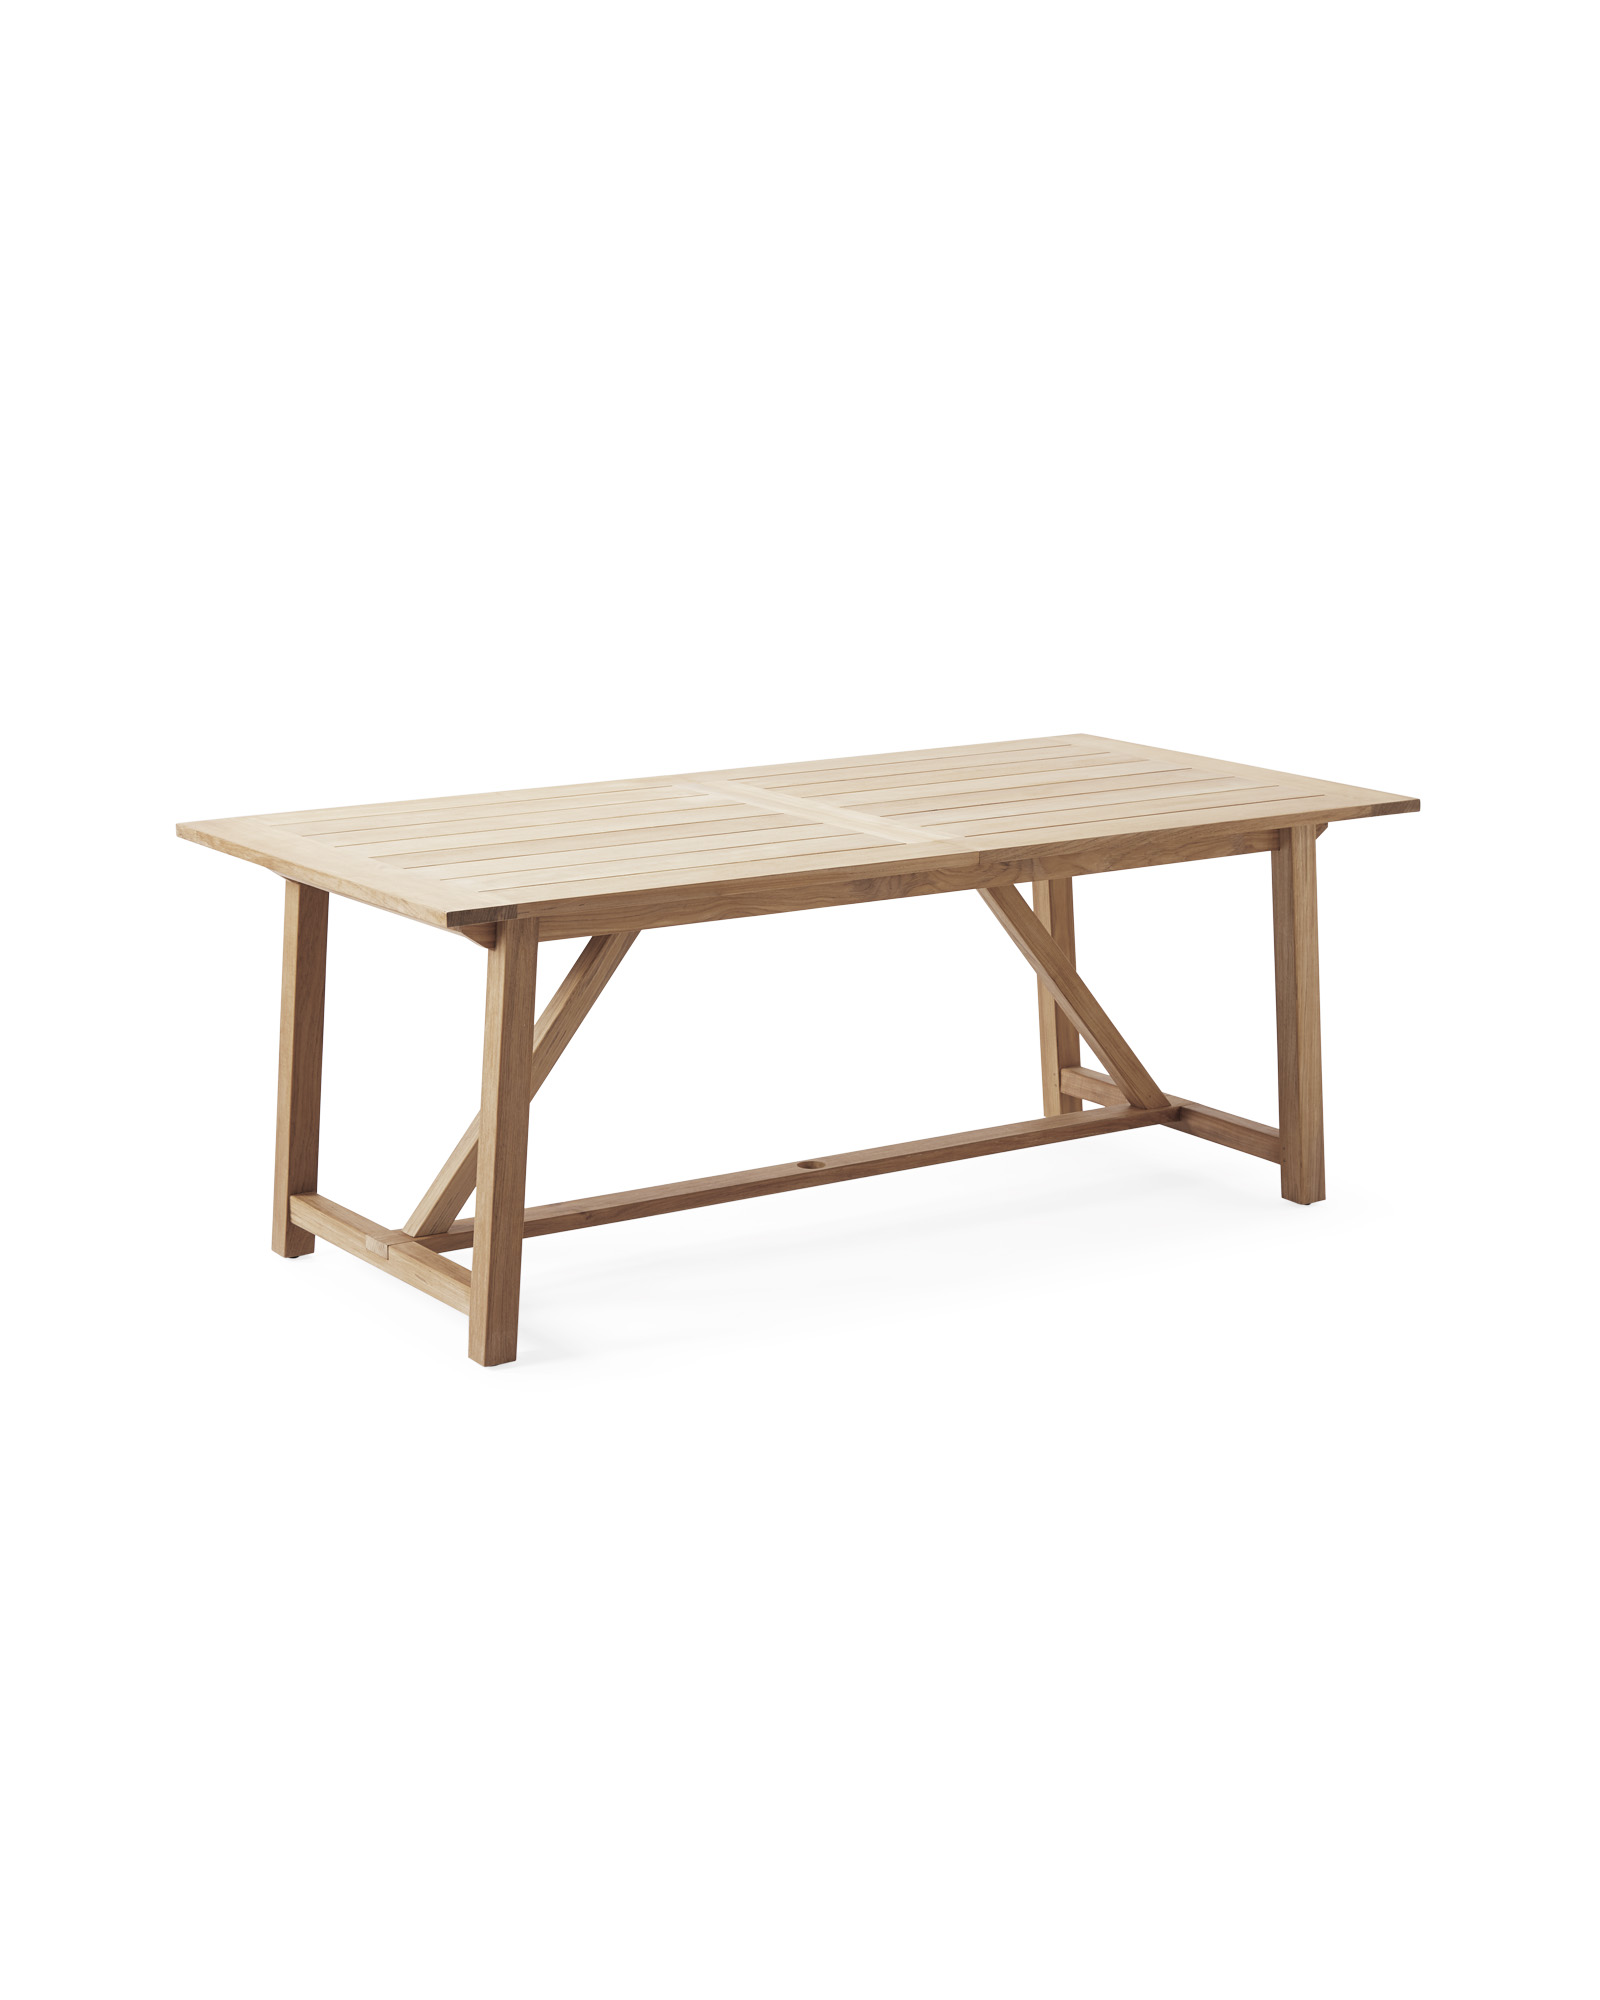 Crosby Teak Expandable Dining Table – Natural,